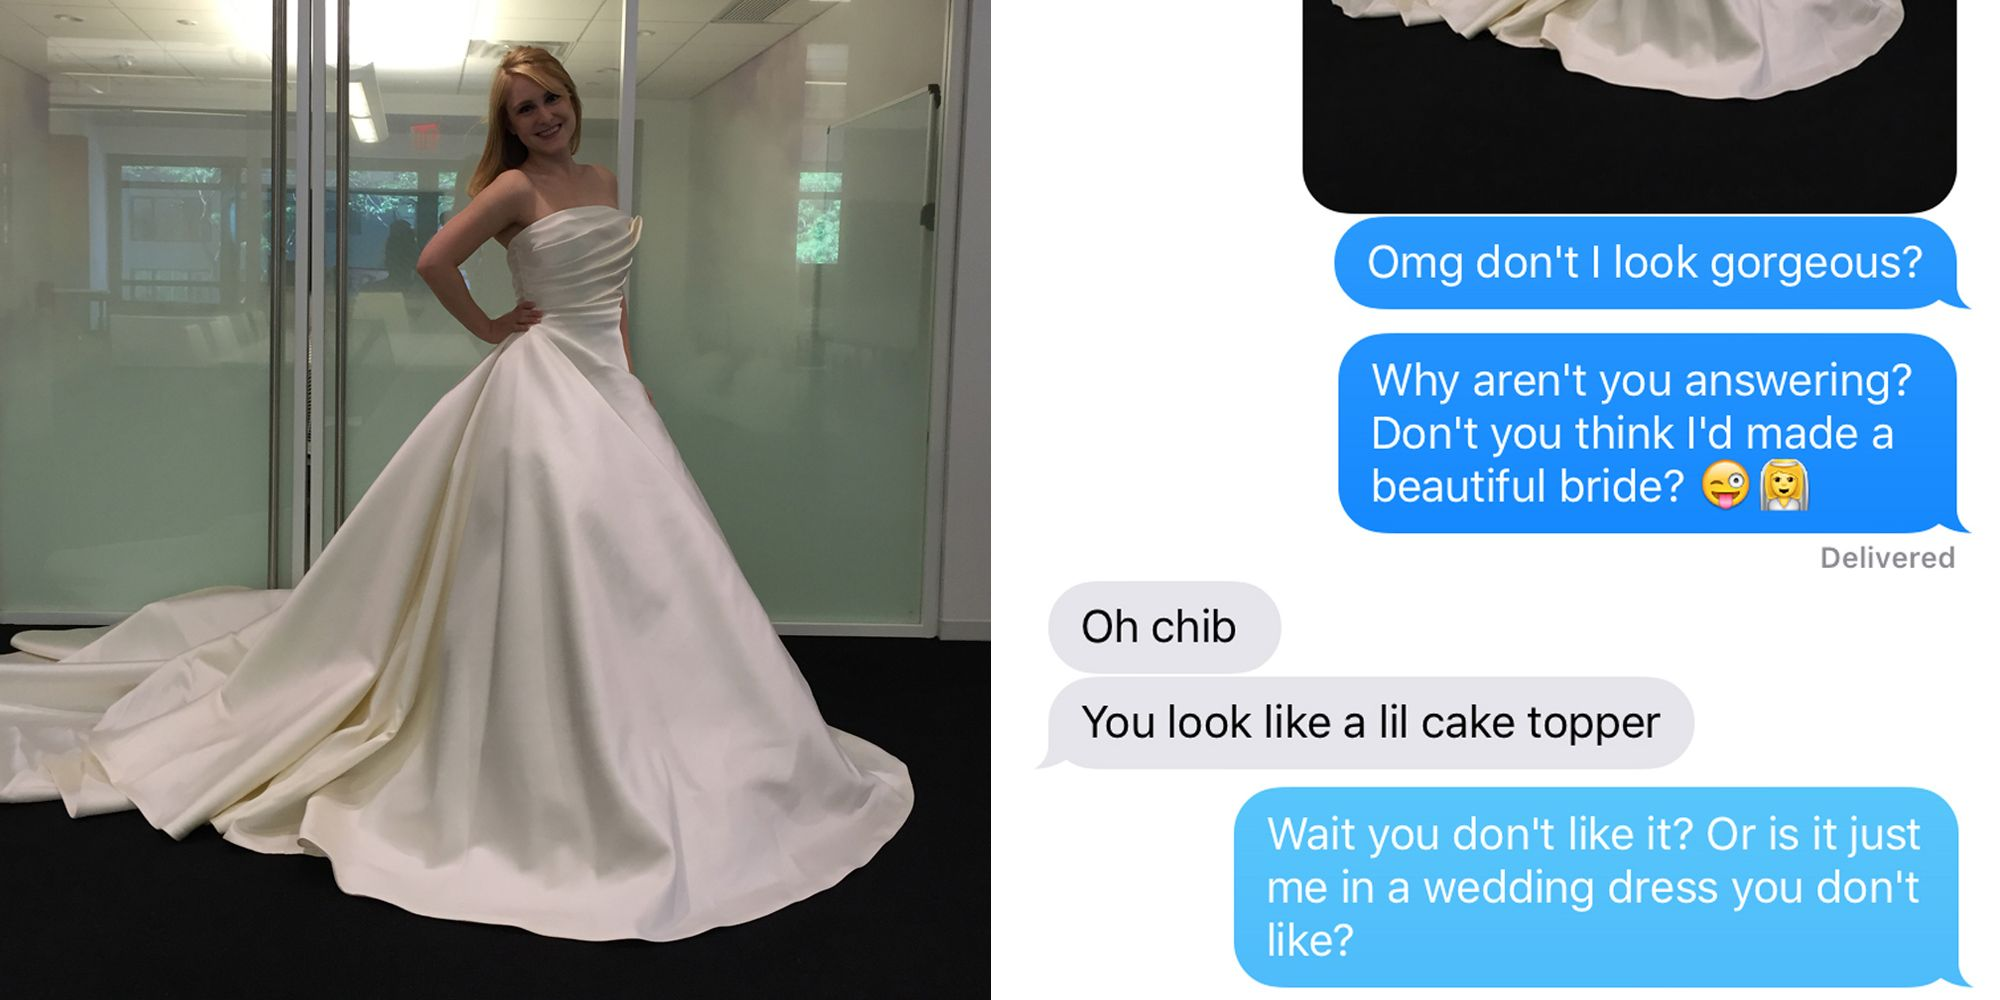 13 Women Texted Photos Of Themselves In Wedding Dresses To Their